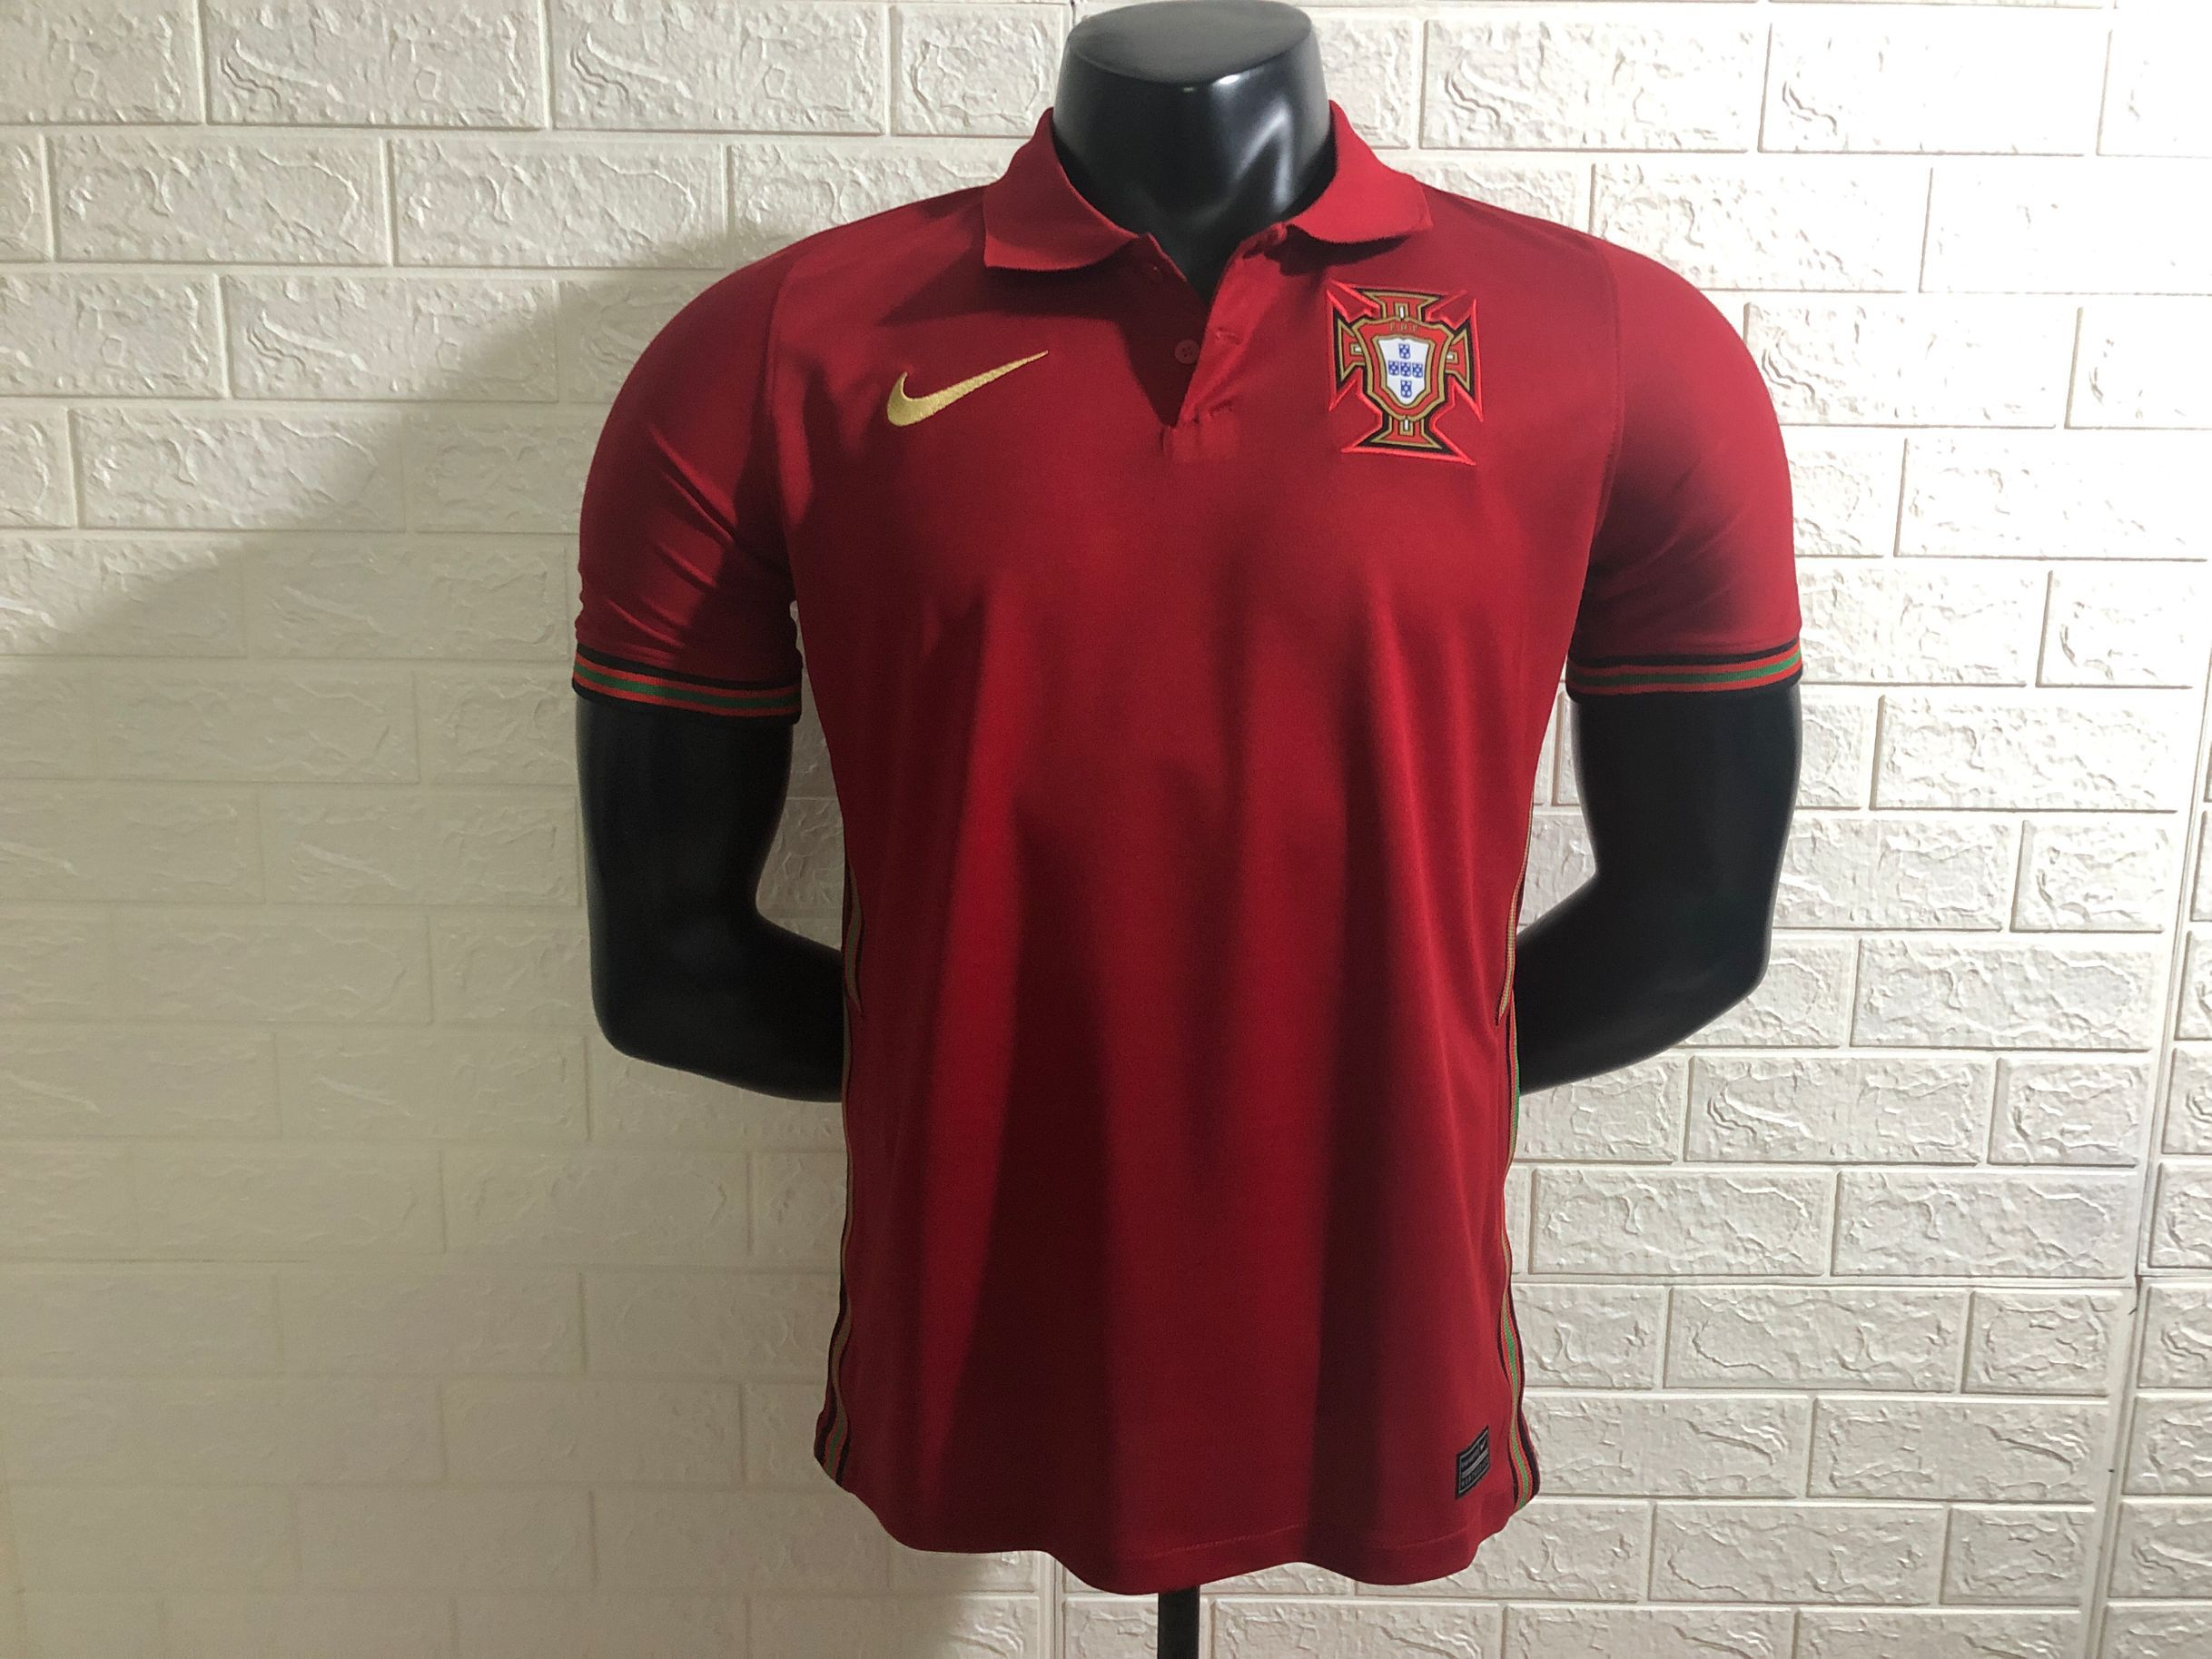 Euro 2020 Portugal Jersey In 2020 Cheap Football Shirts Soccer Jersey Football Shirts